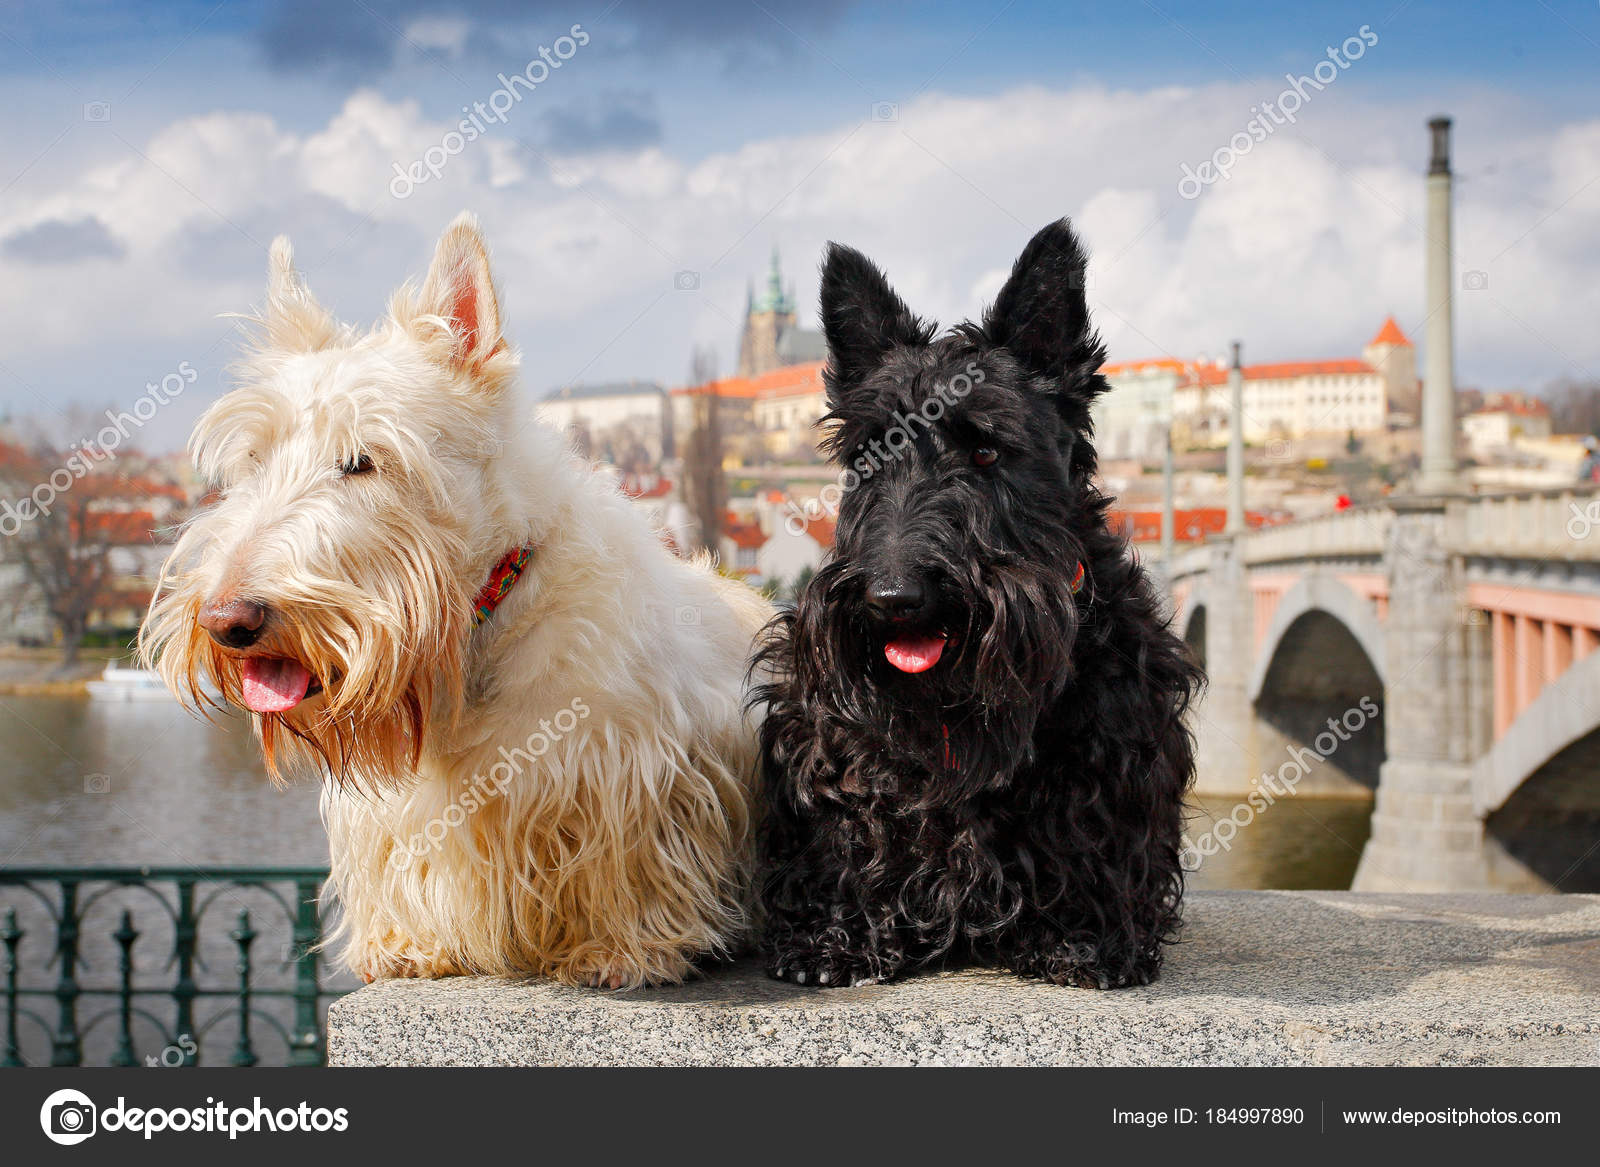 Black And White Whisky Dogs Scottish Terrier Black White Wheaten Dog Pair Beautiful Dogs Sitting Stock Photo Ondrejprosicky 184997890